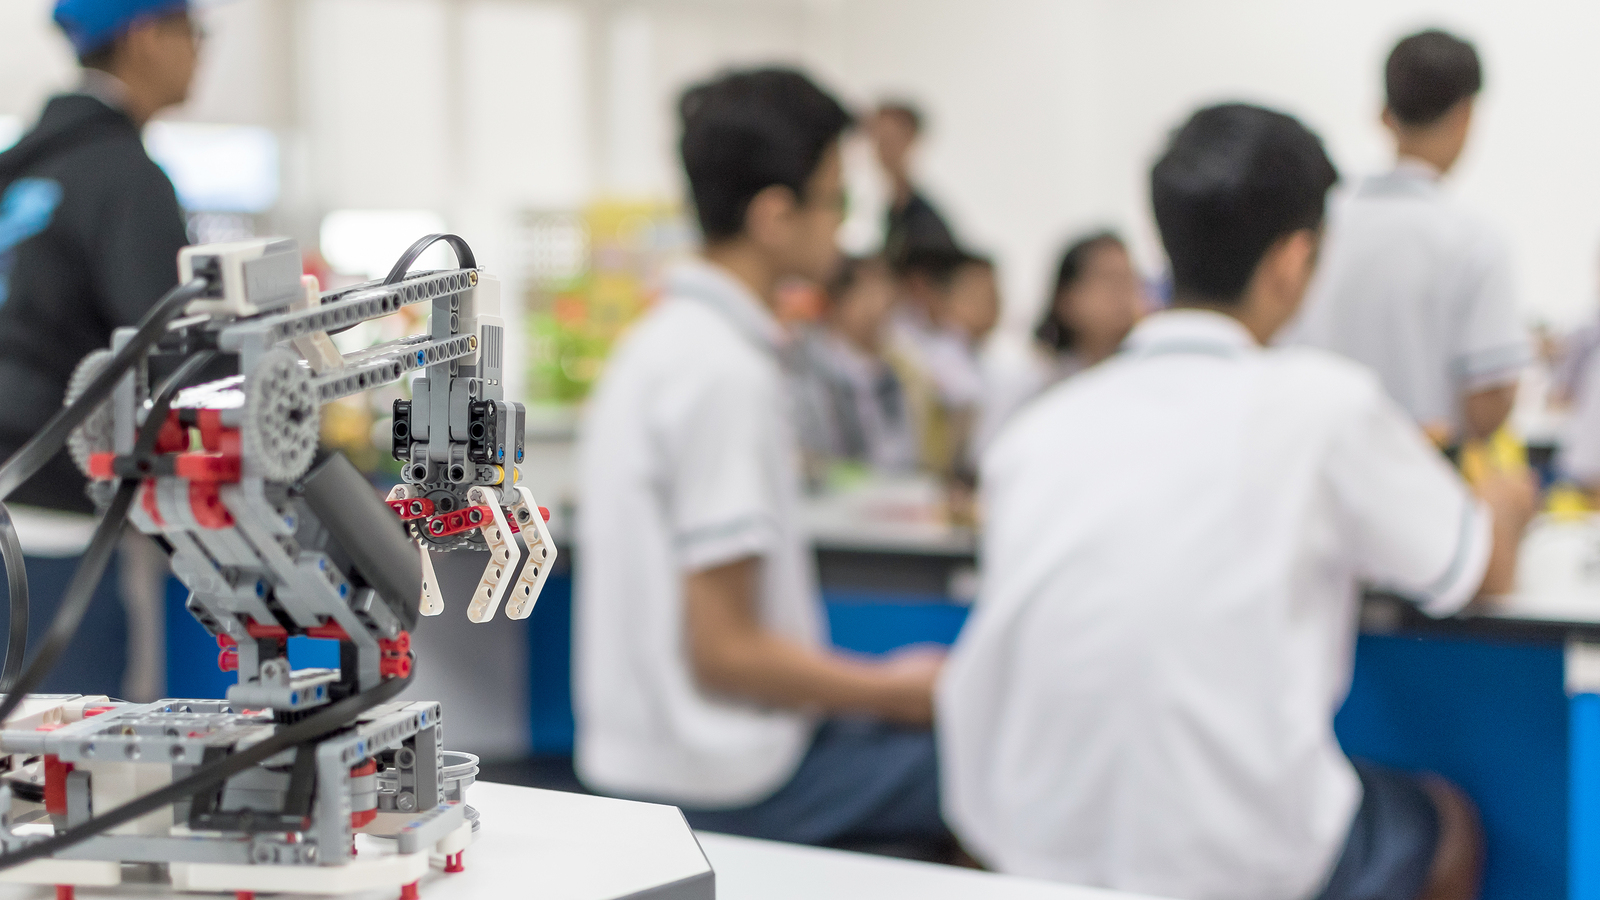 STEM education is becoming more important for education policy worldwide. -